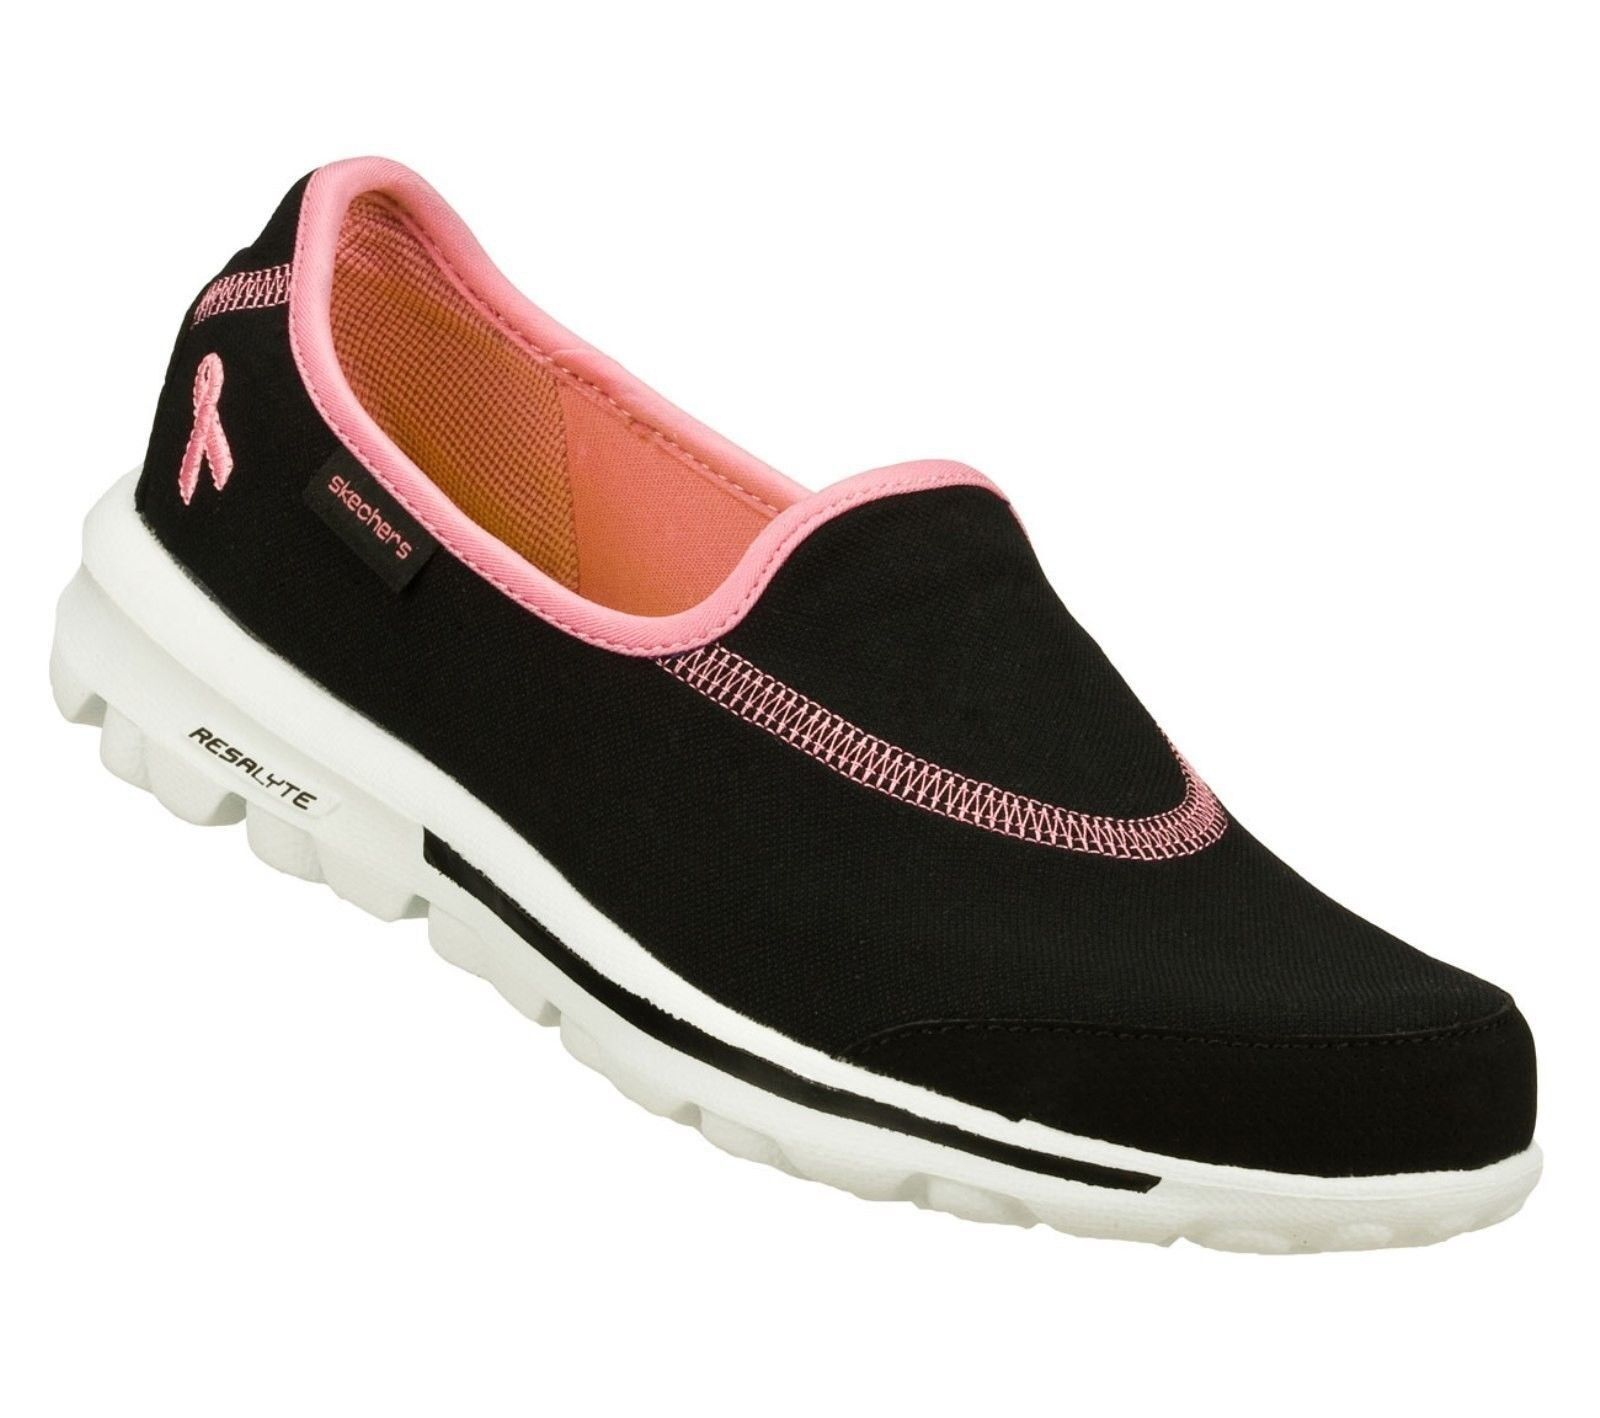 NEW SKECHERS HOPE 13649 BREAST CANCER AWARENESS the CURE BLACK PINK SHOES 7 Last